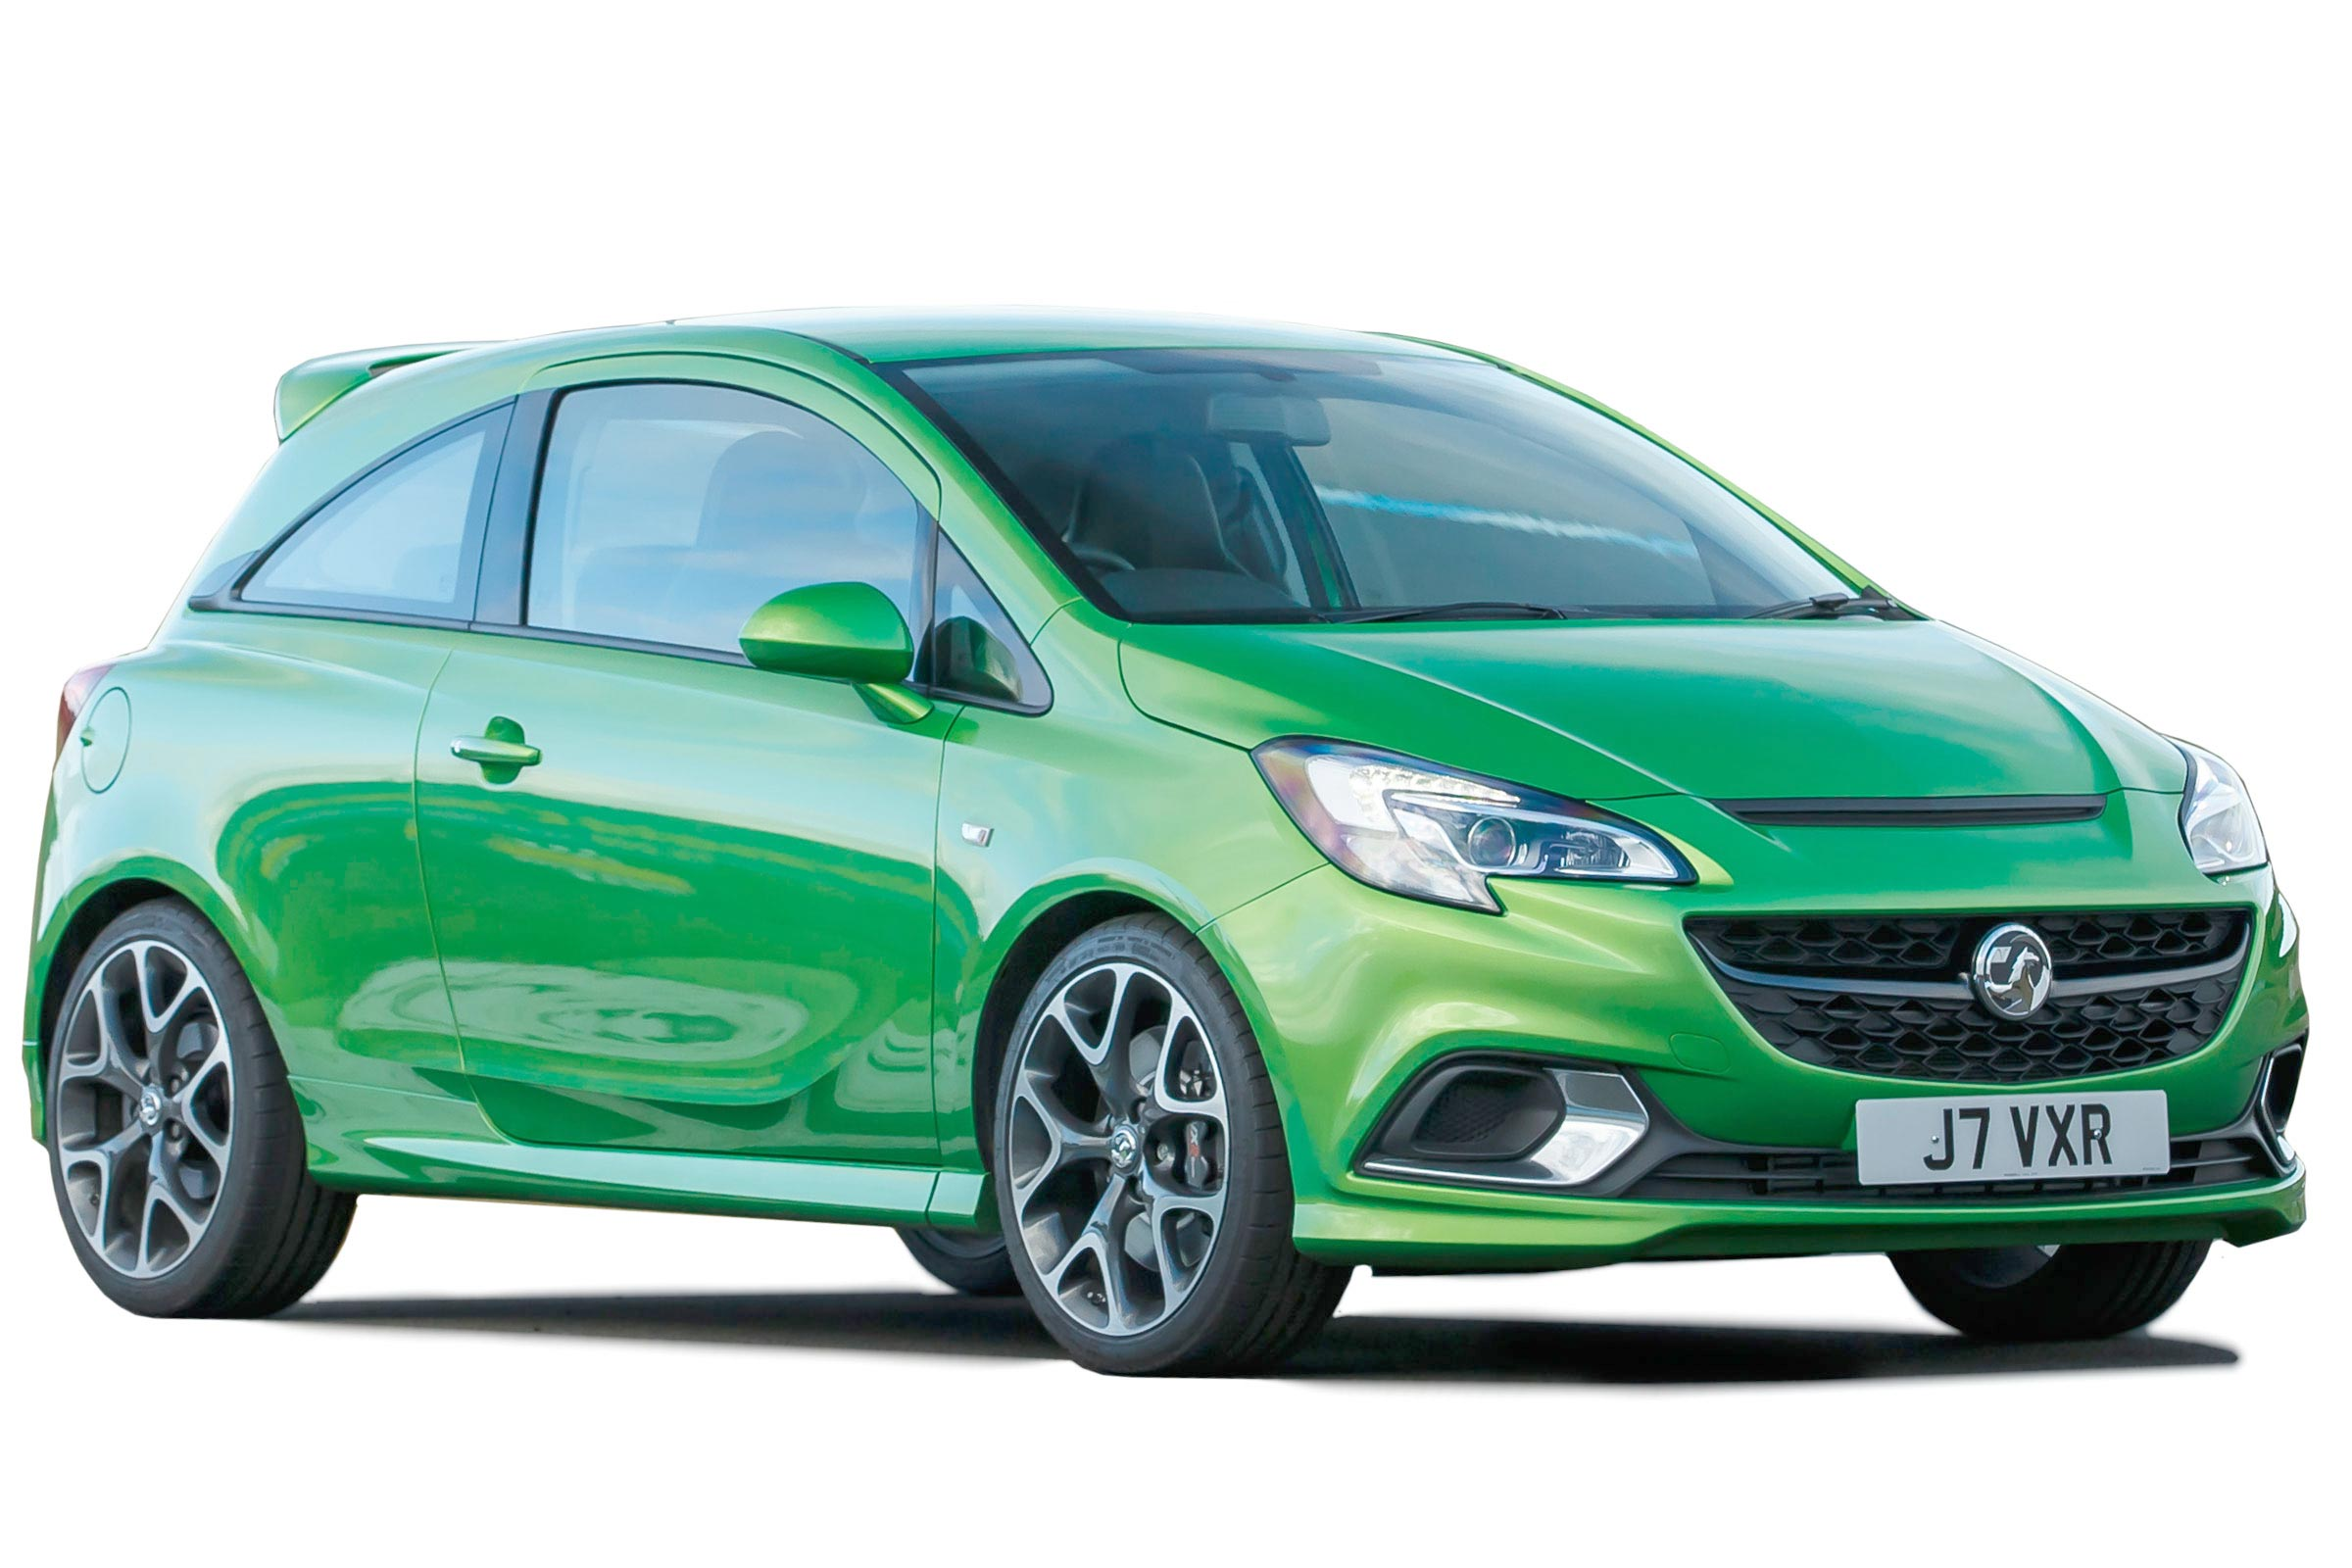 93 The Best 2019 Vauxhall Corsa VXR Redesign and Concept